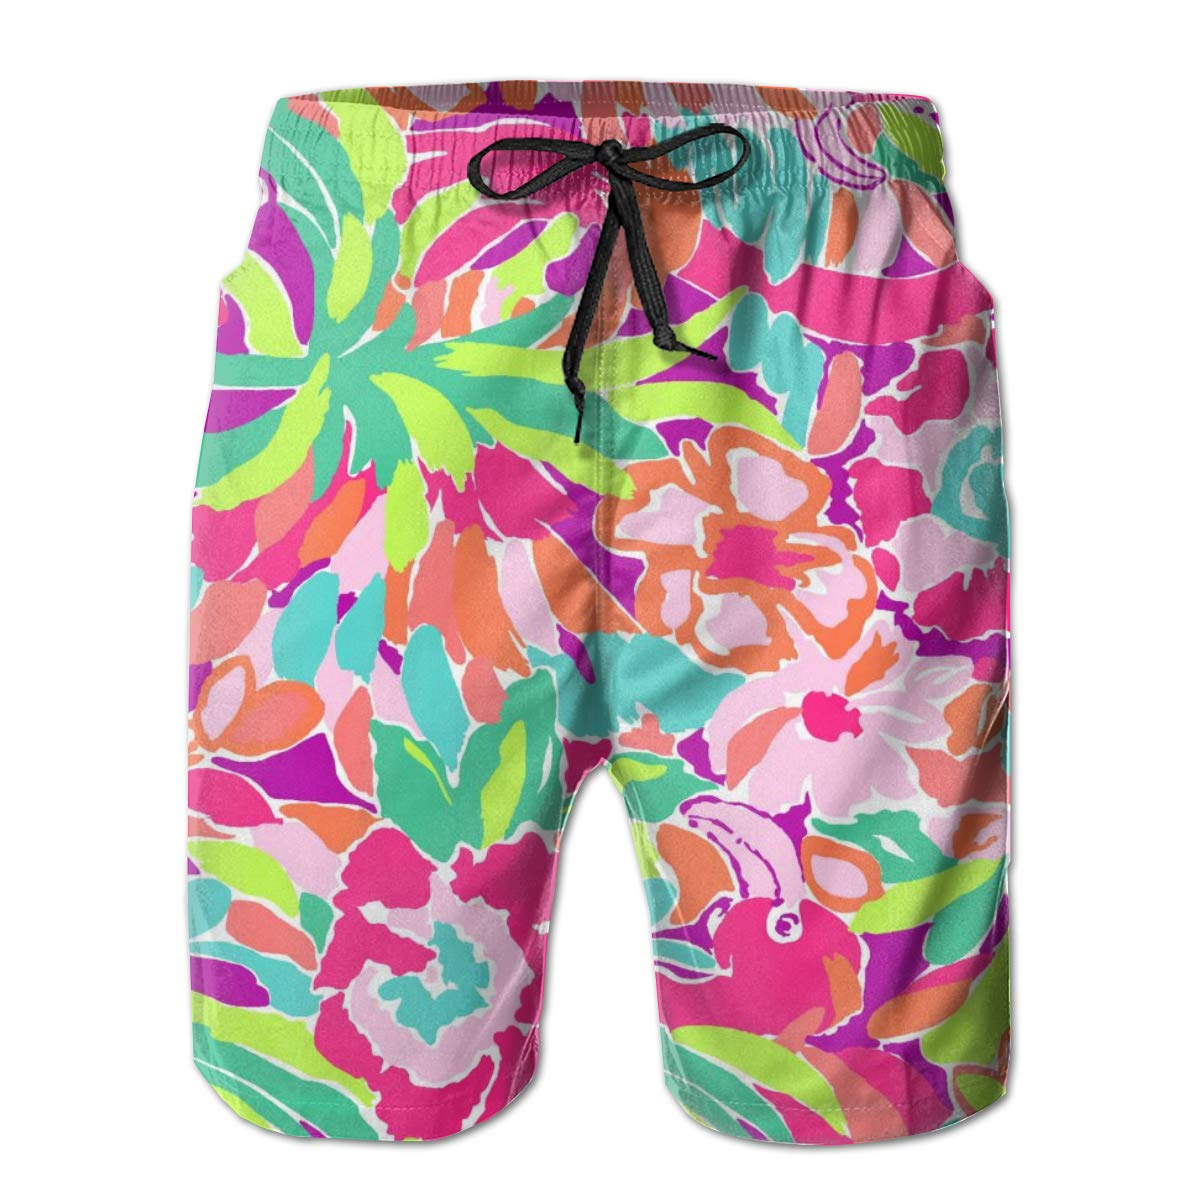 Mens Beachwear Swim Trunks Pink Flamingo Water Resistant Surfing Beach Summer Outfit Pants